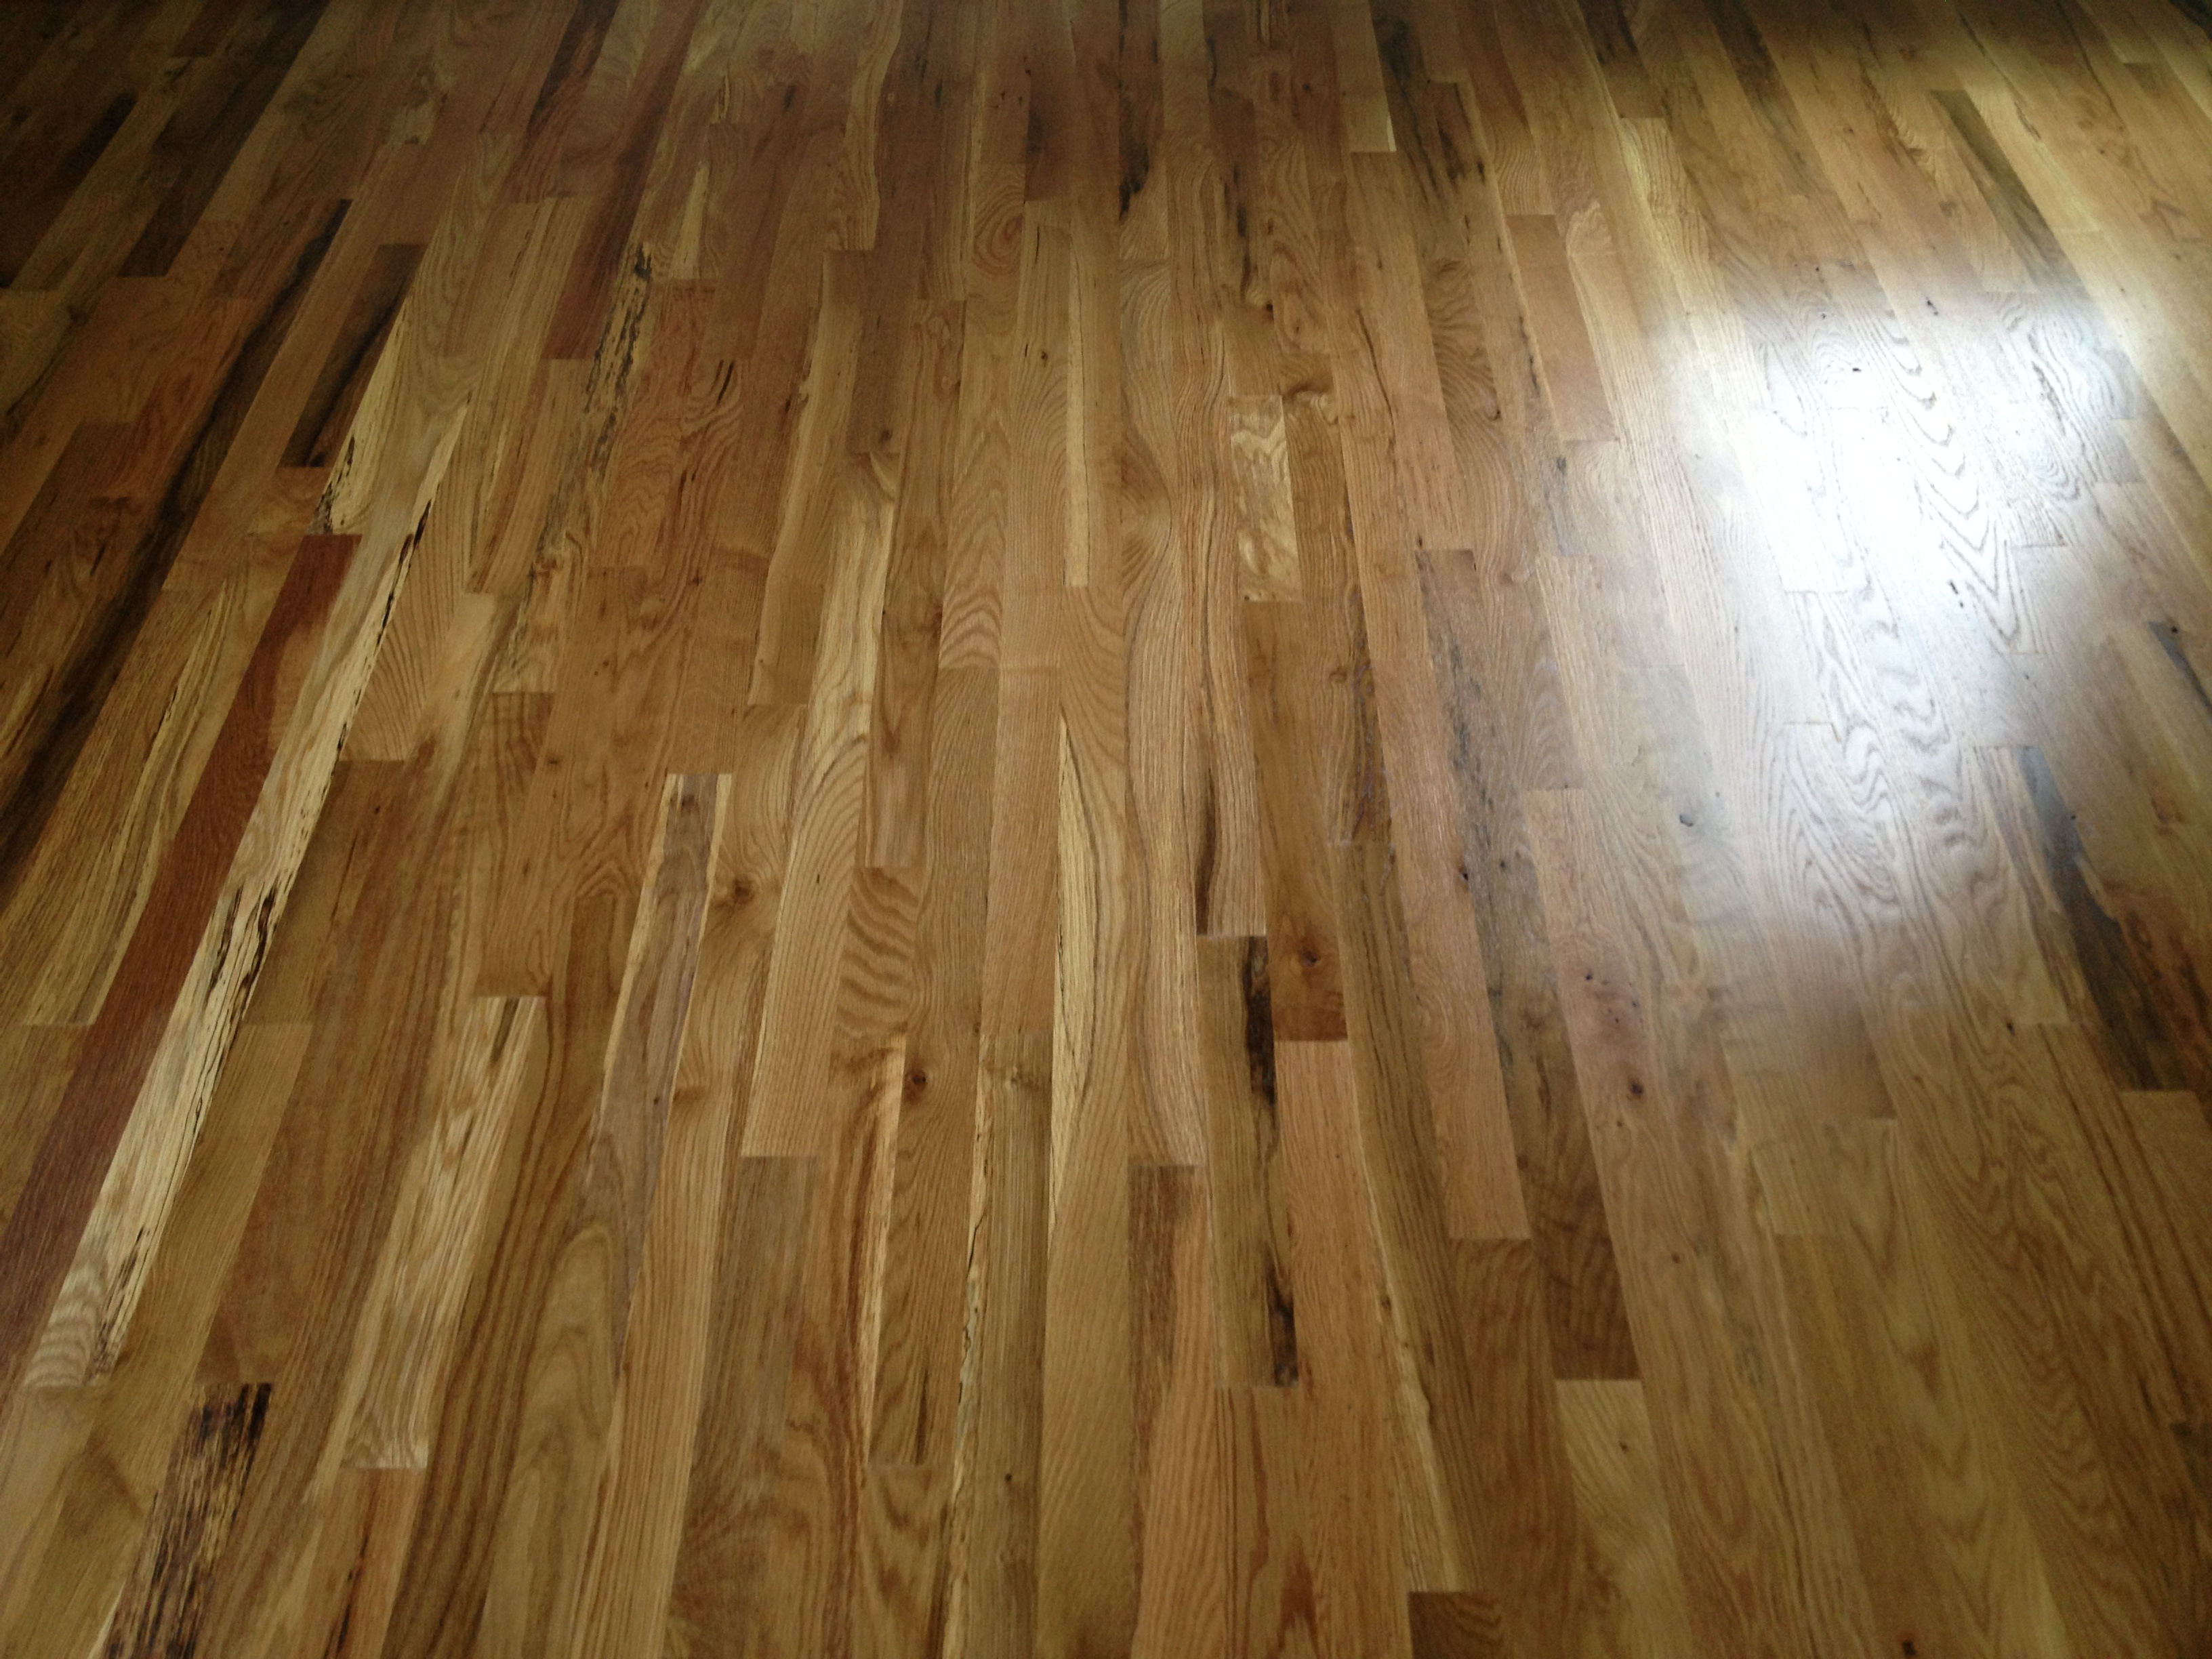 The Hardwood Grading System Explained The Flooring Blog